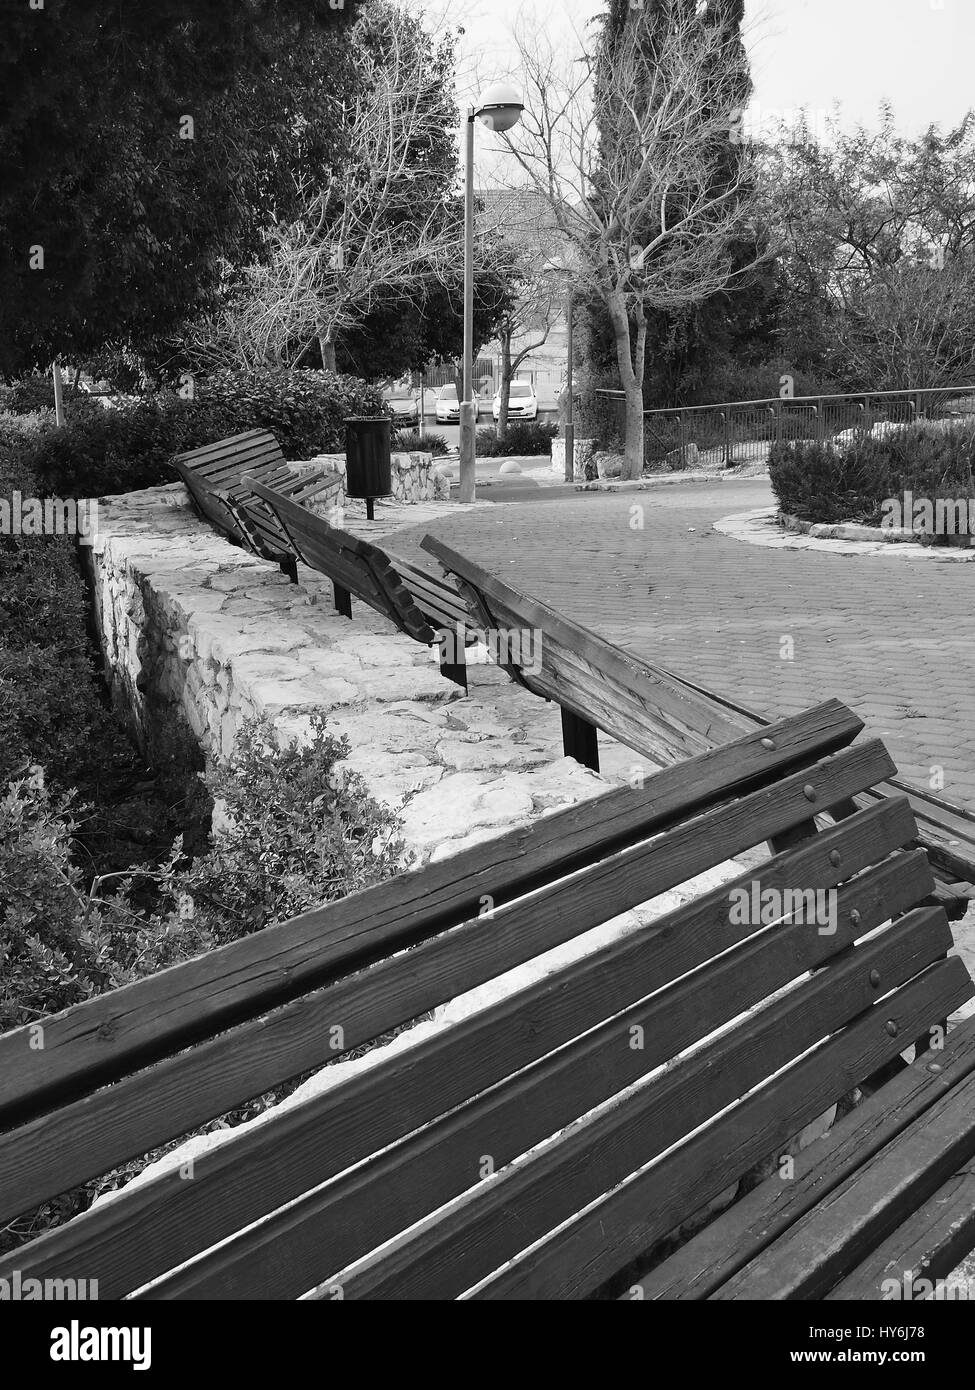 Benches in the park - Black And White - Stock Image